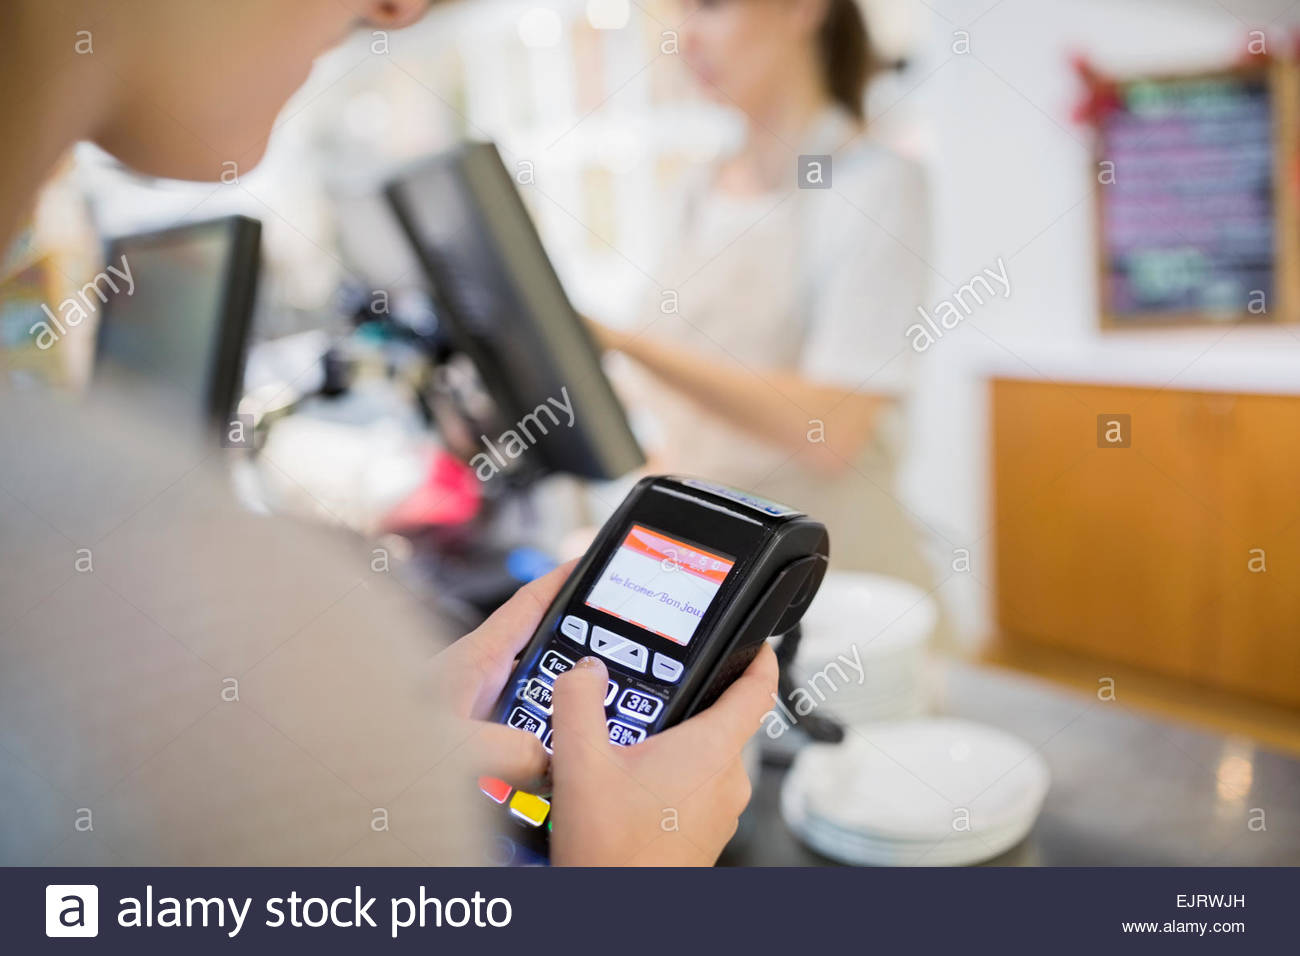 Woman using credit card reader in cafe - Stock Image